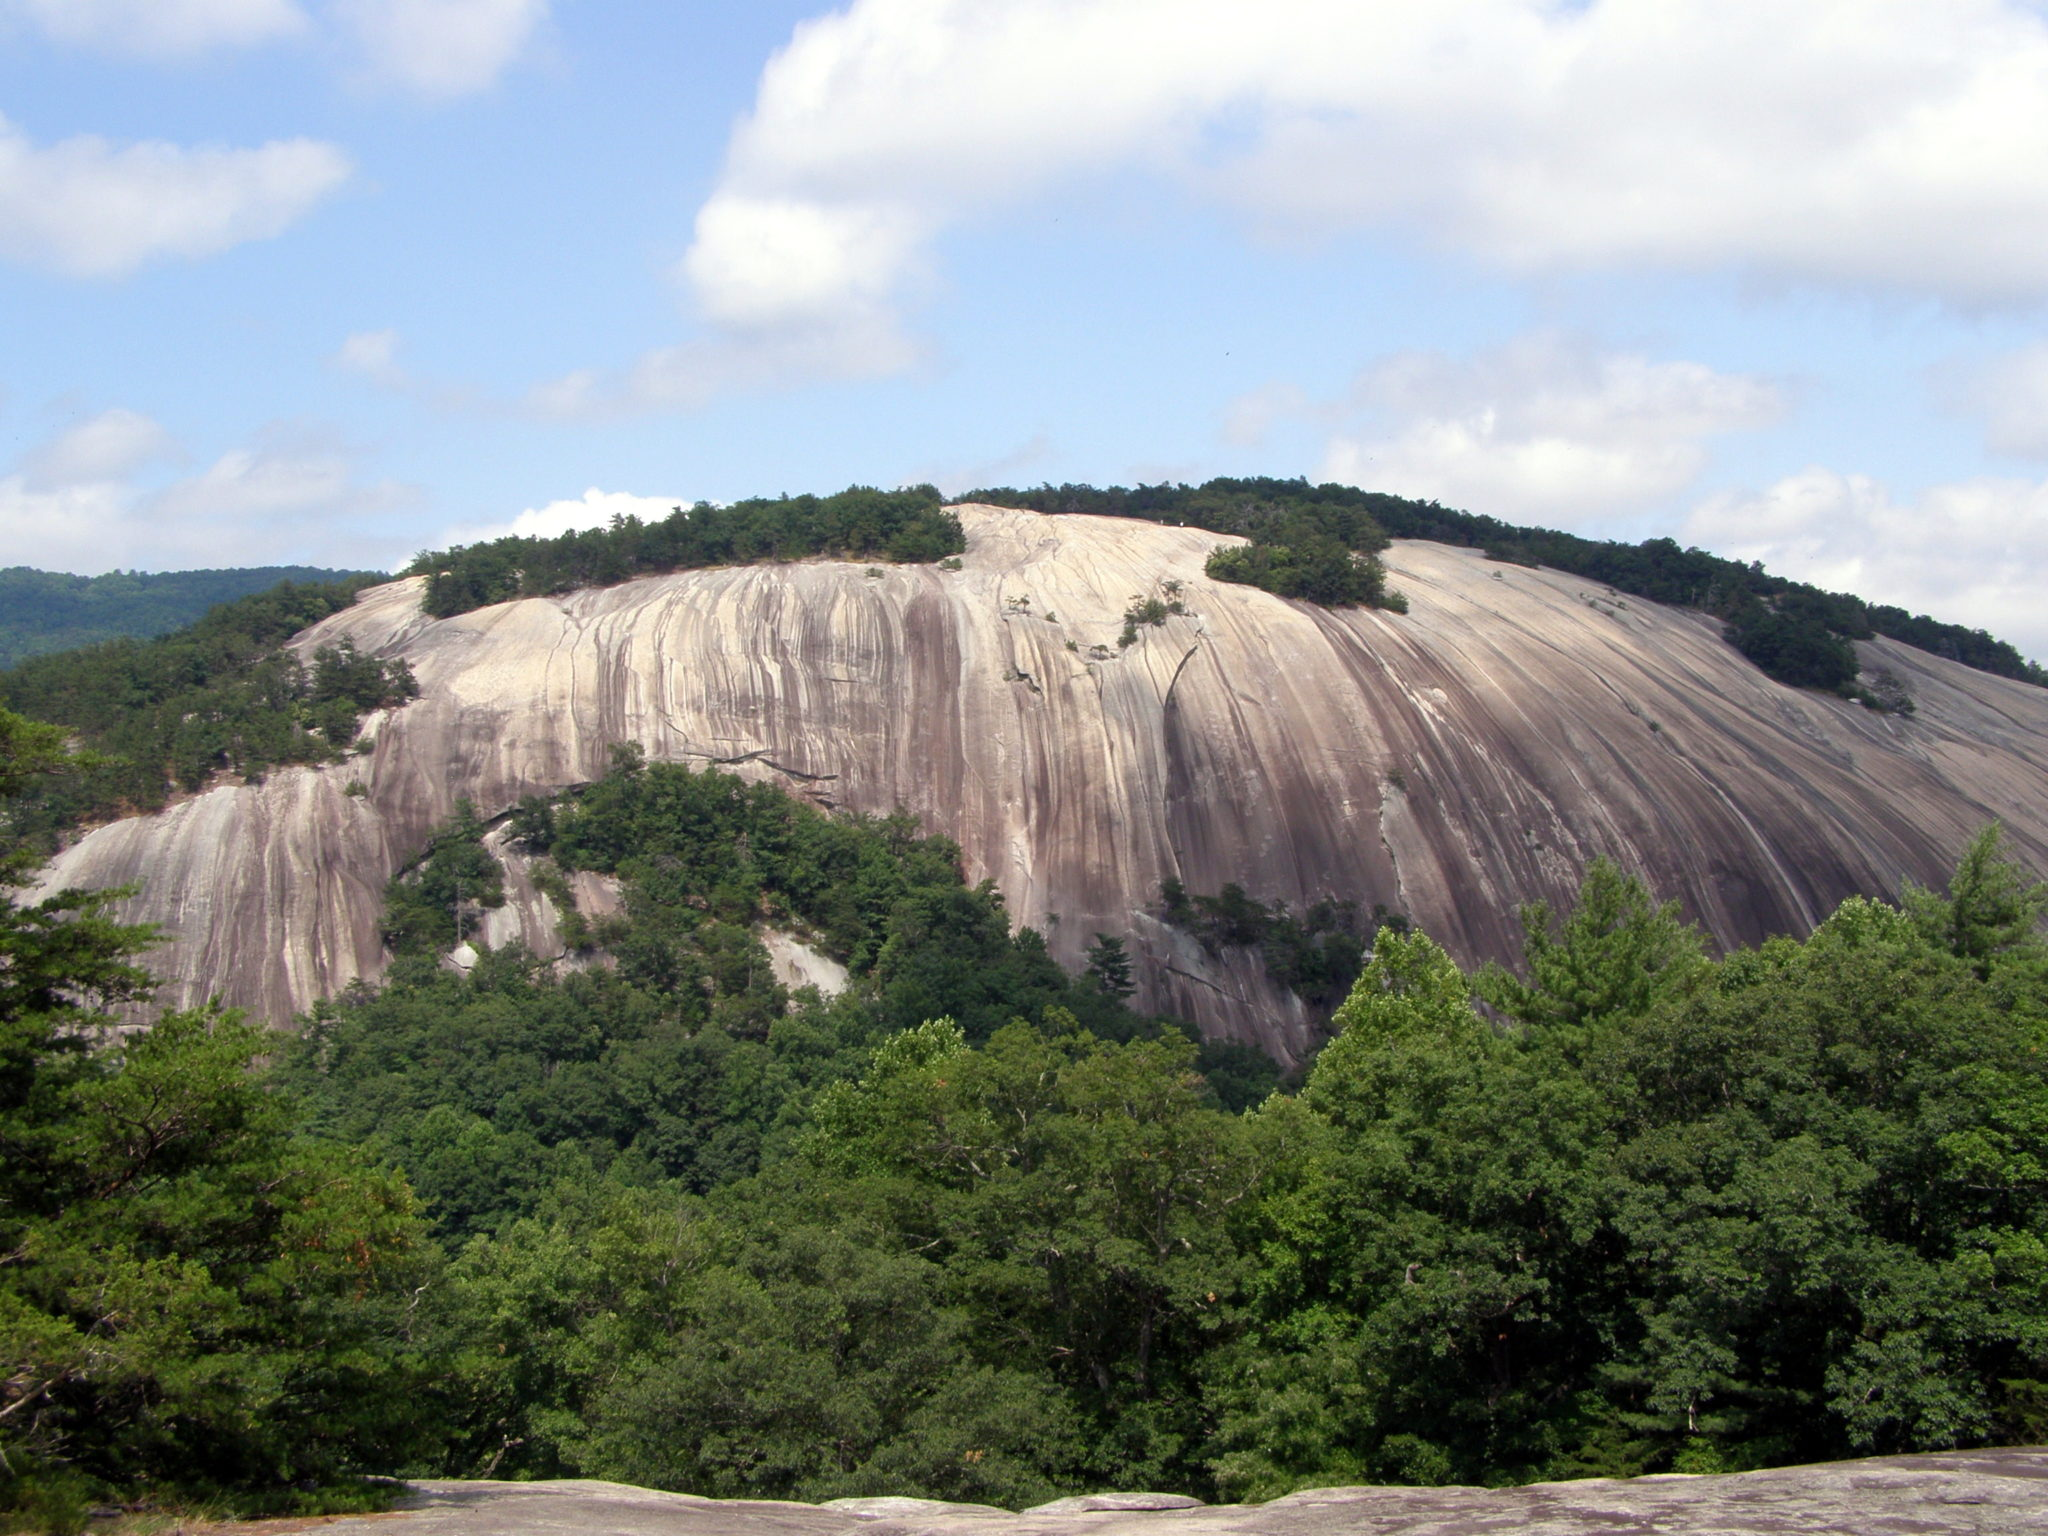 stone mountain bbw dating site 29 reviews of stone mountain state park beautiful park with  the interpretive signs were an interesting way to learn about mountain farm life dating back to the.